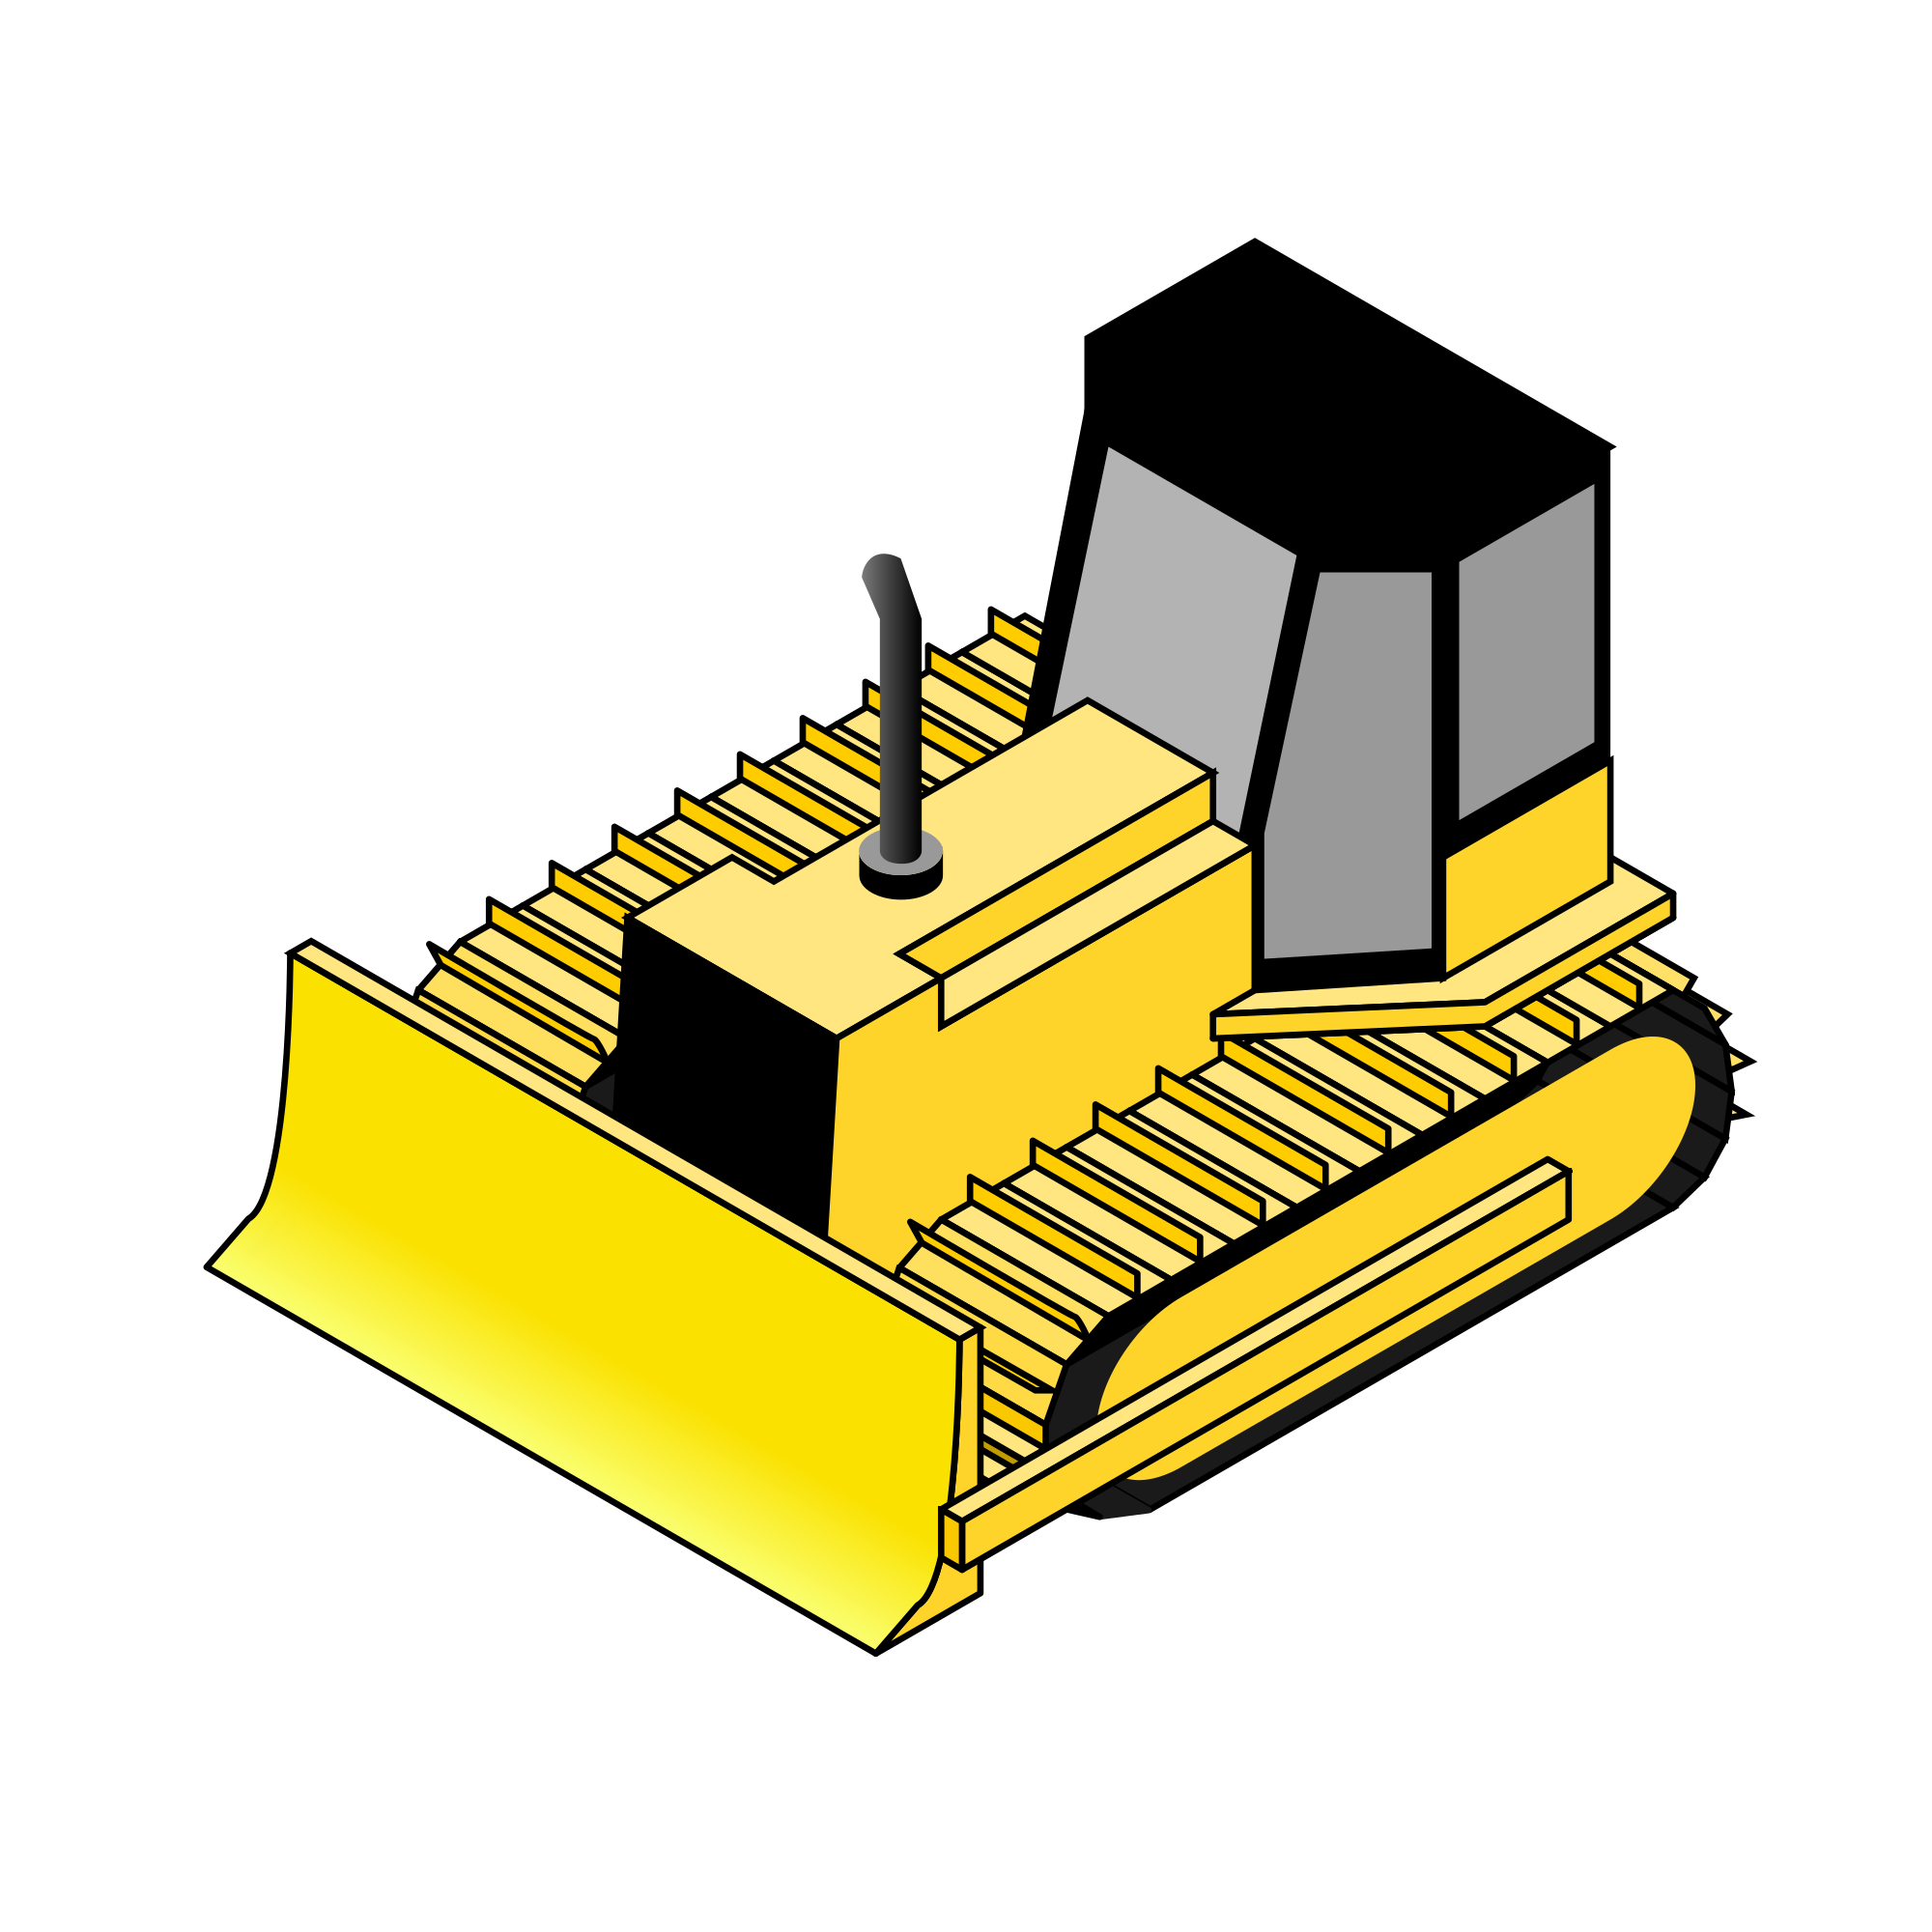 bulldozer svg animated